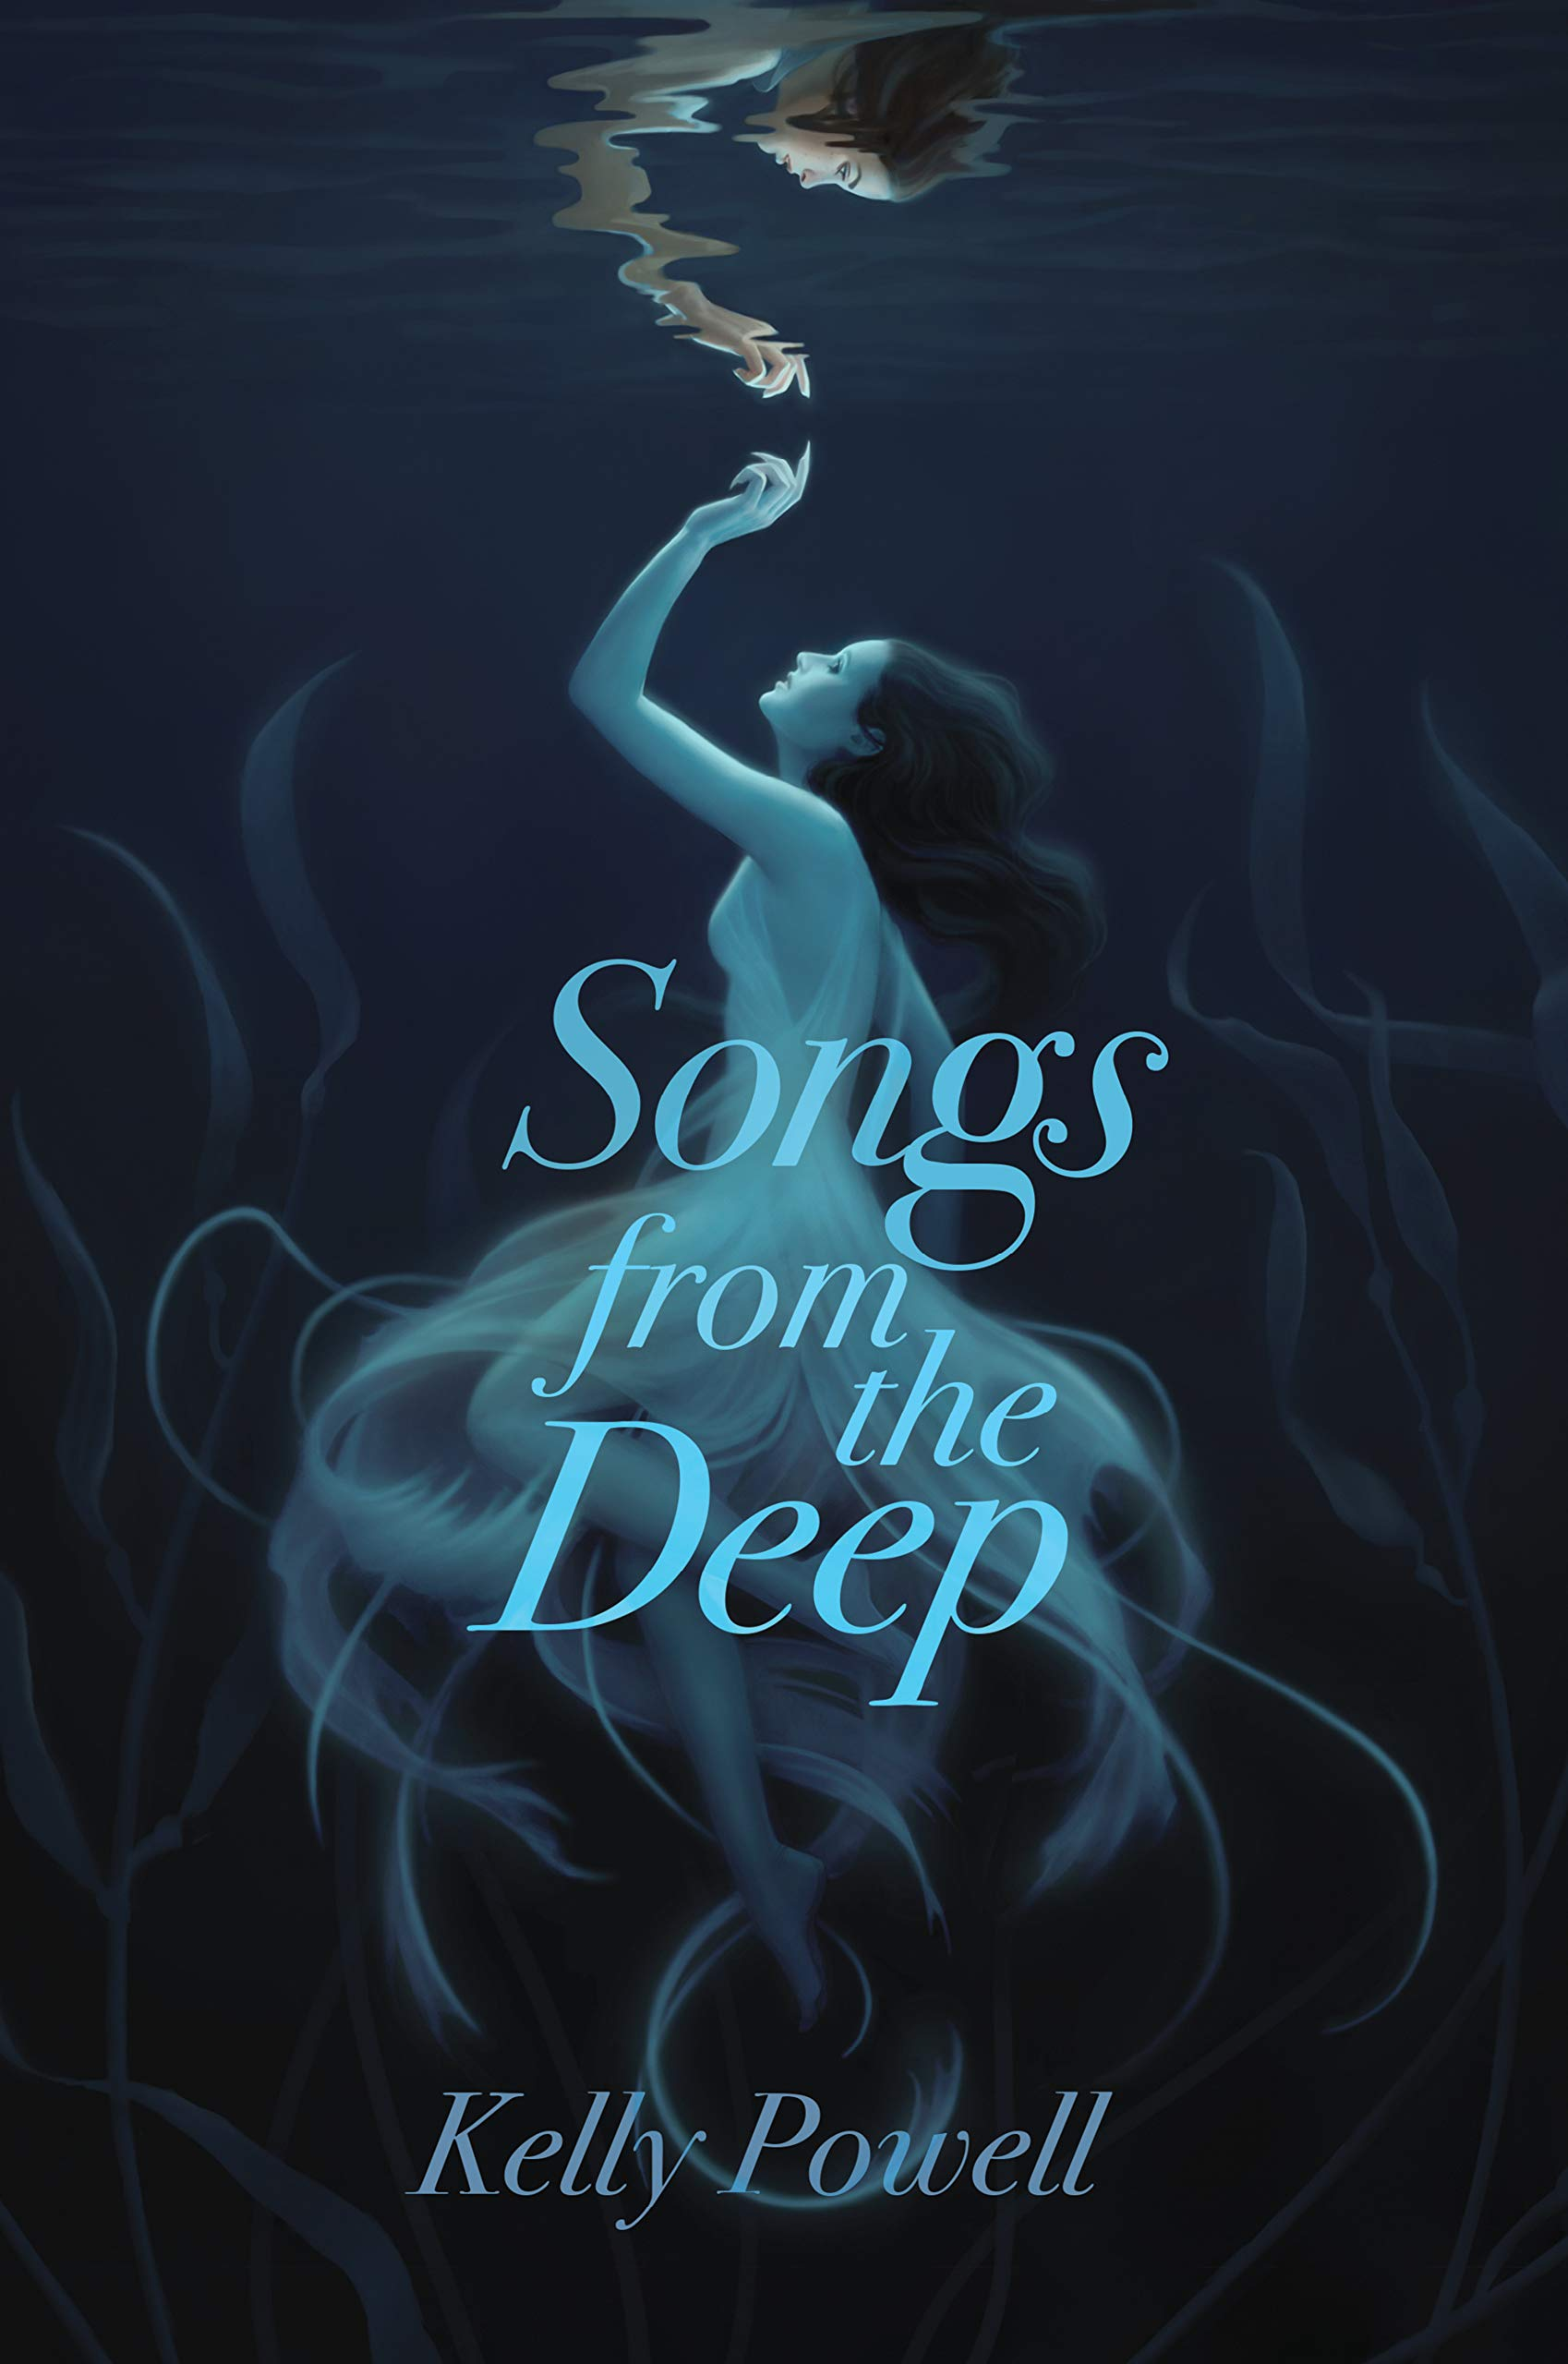 Amazon.com: Songs from the Deep (9781534438071): Powell, Kelly: Books